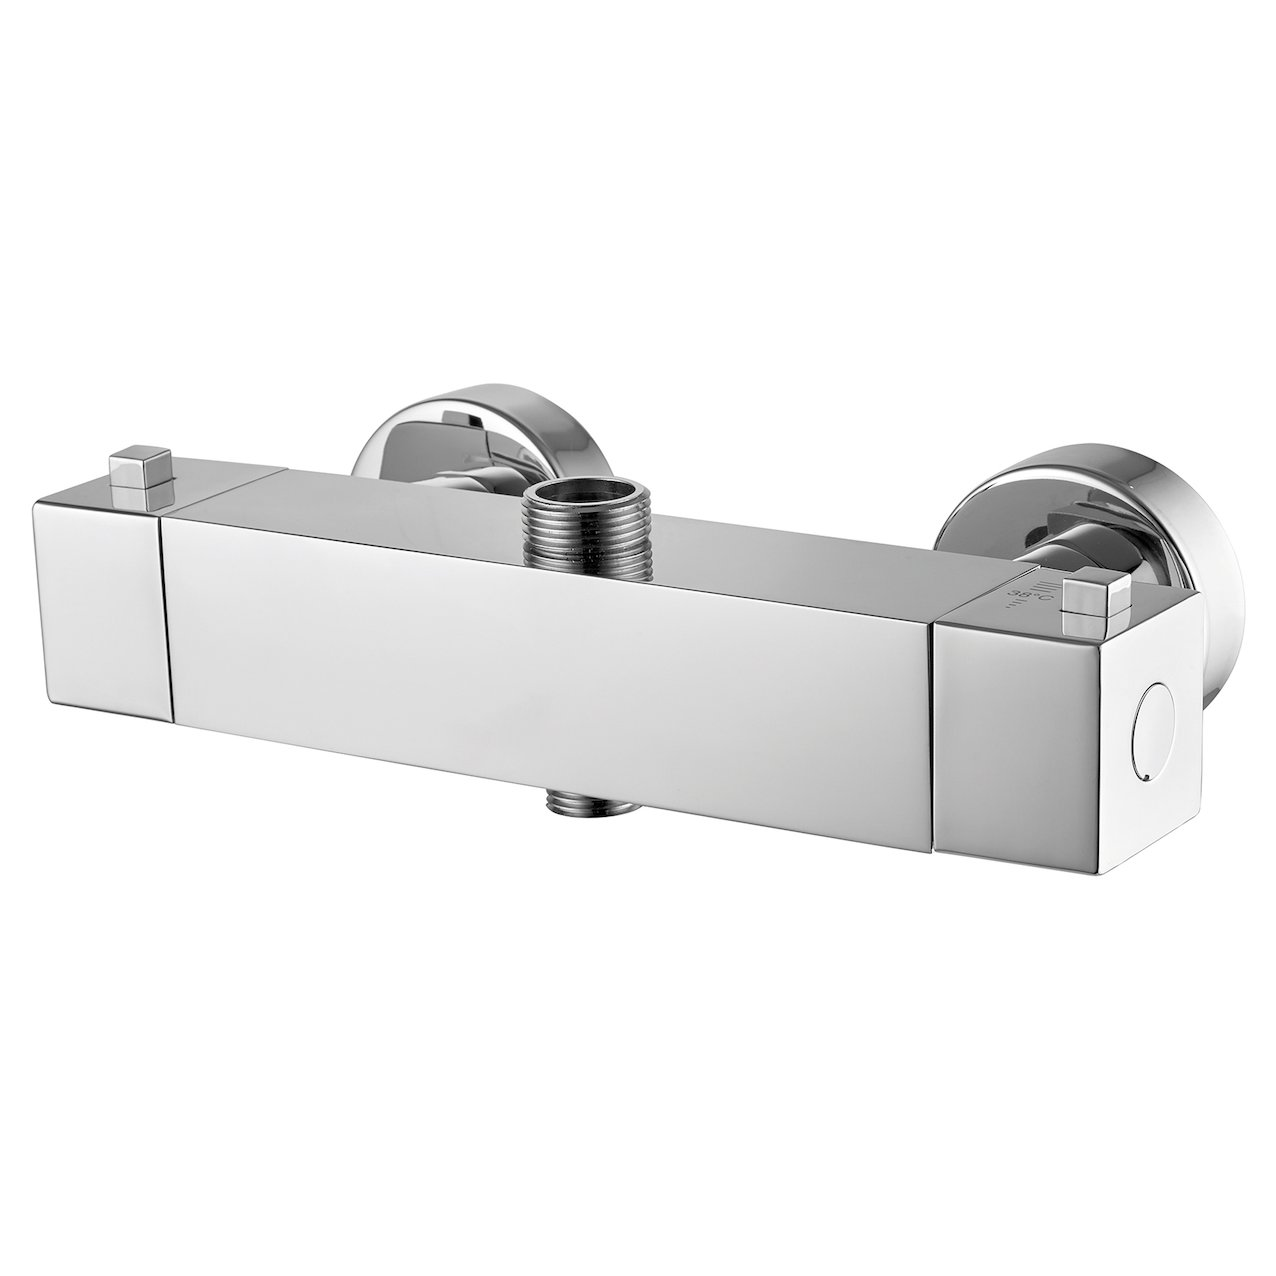 Thermostatic shower mixer 2 ways Quadra